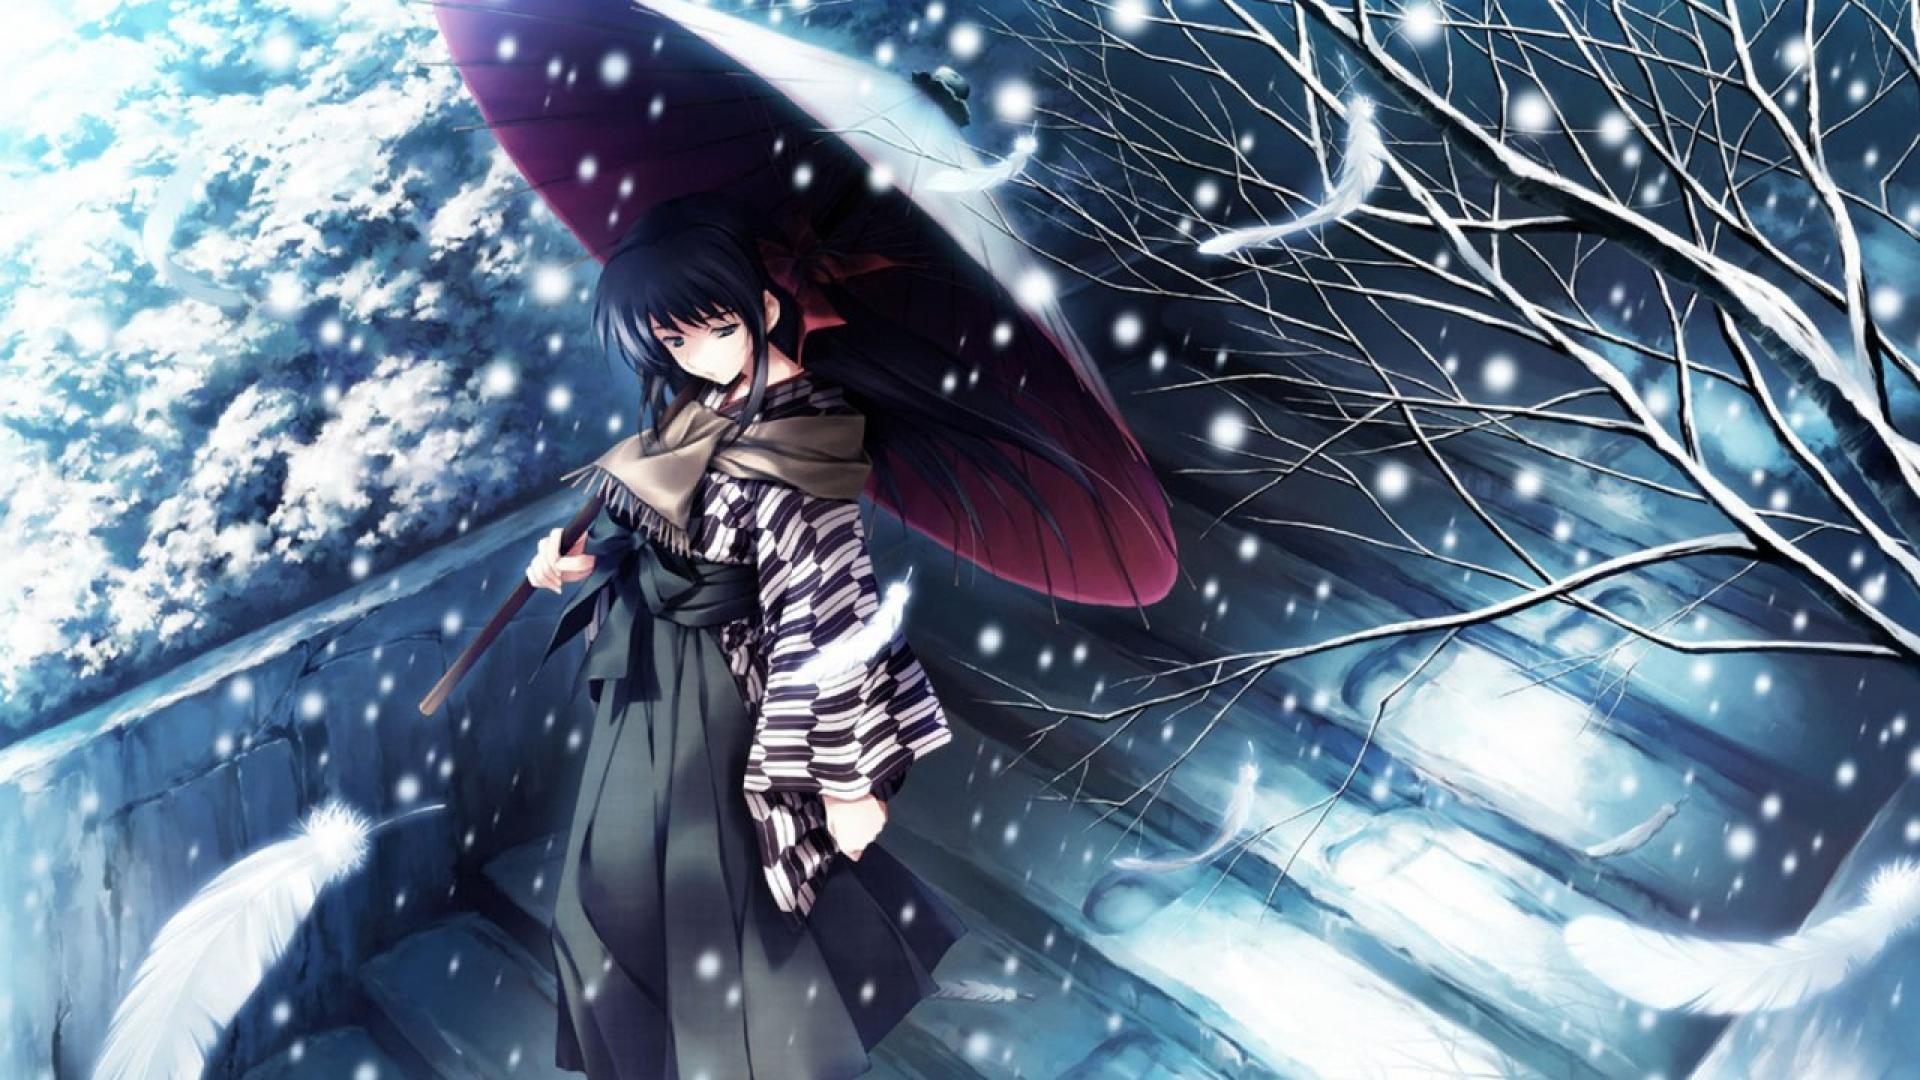 Winter Anime Wallpapers - Wallpaper Cave